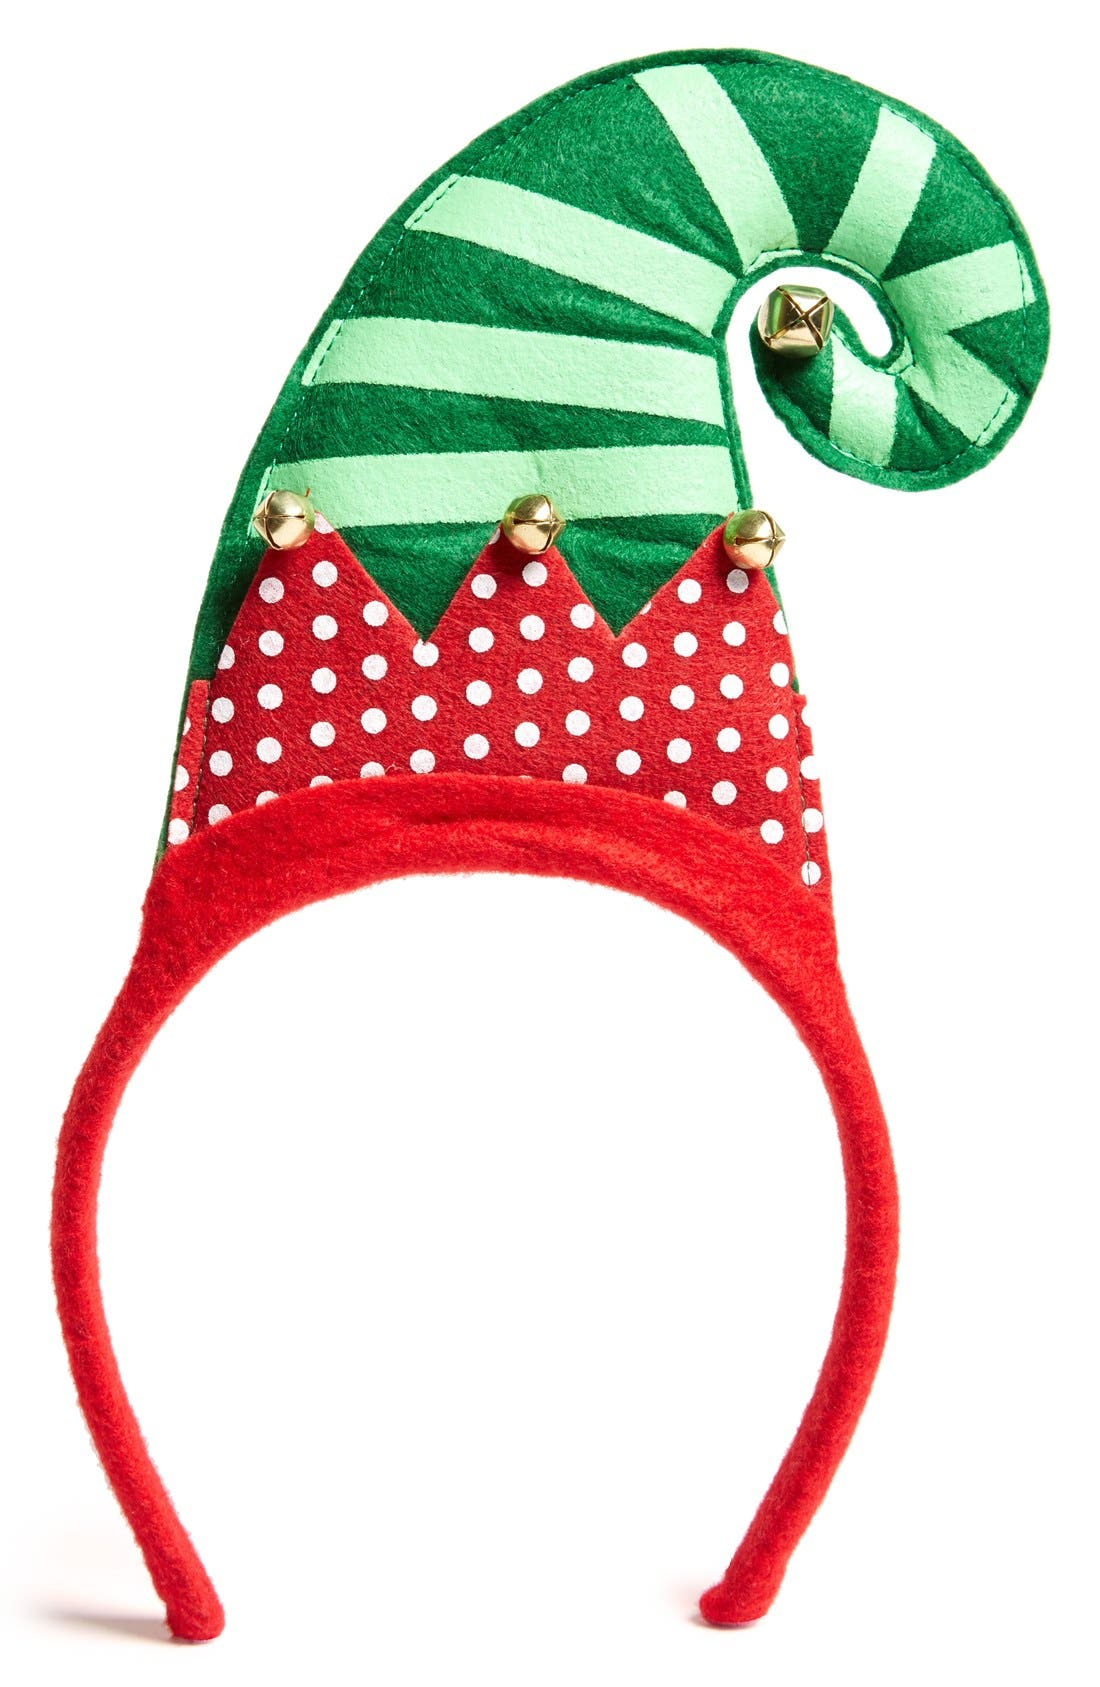 Alternate Image 1 Selected - Capelli of New York Elf Hat Headband